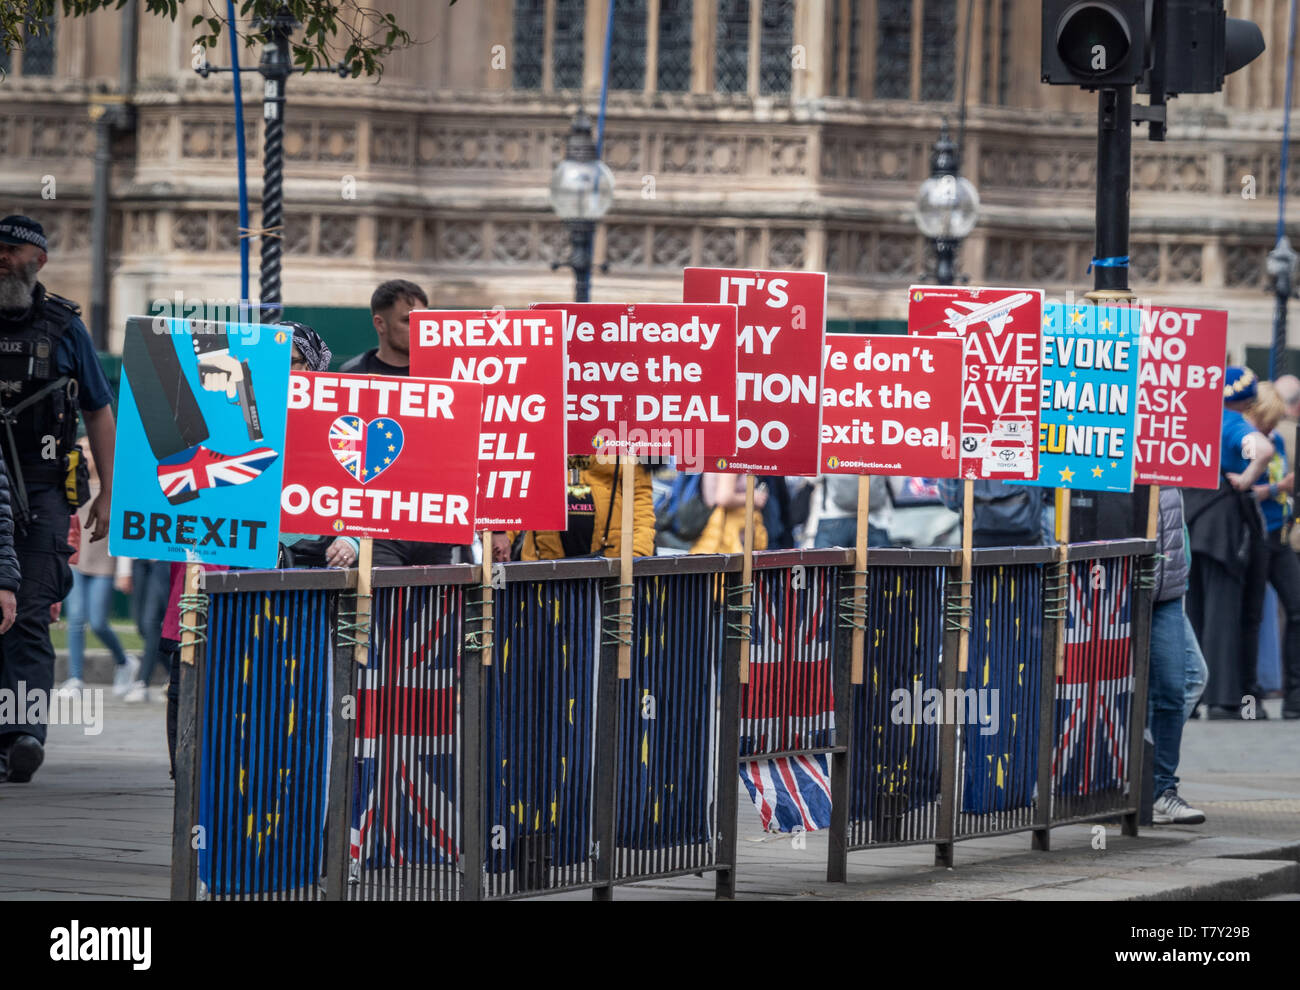 Anti-Brexit placards fastened to railings outside Westminster, London, UK. Stock Photo